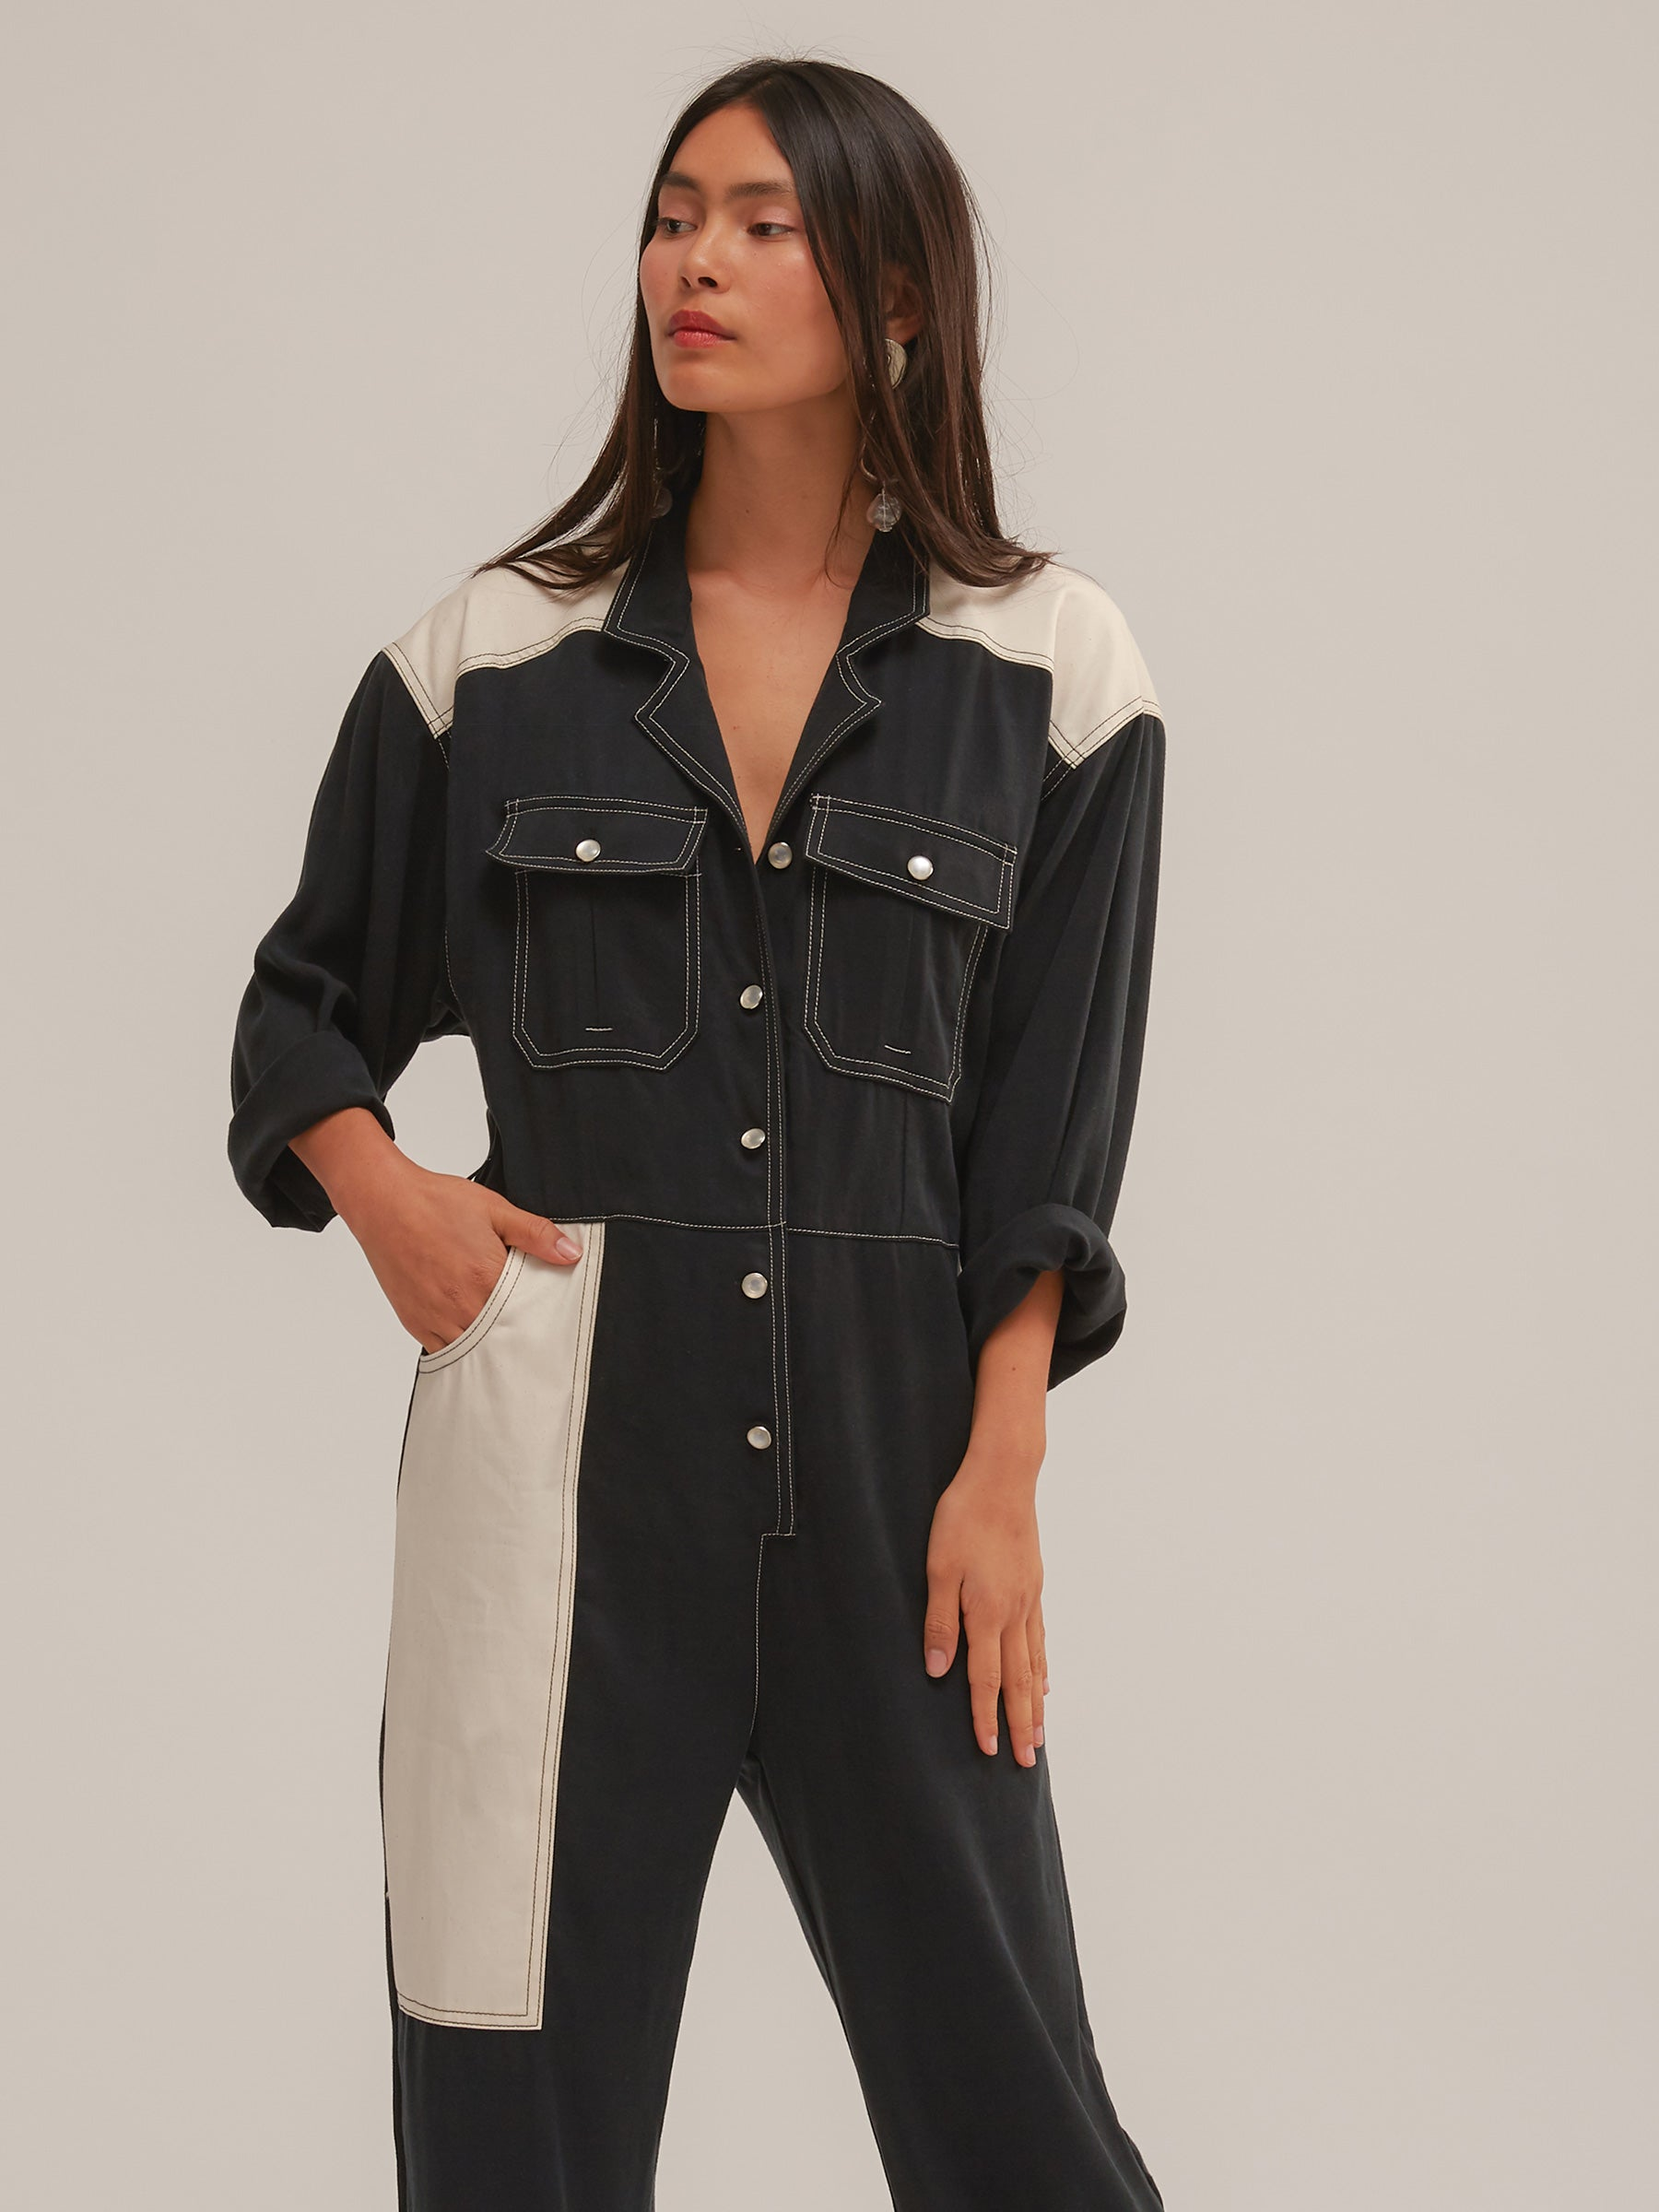 Crowe Jumpsuit in Black/Buttercream